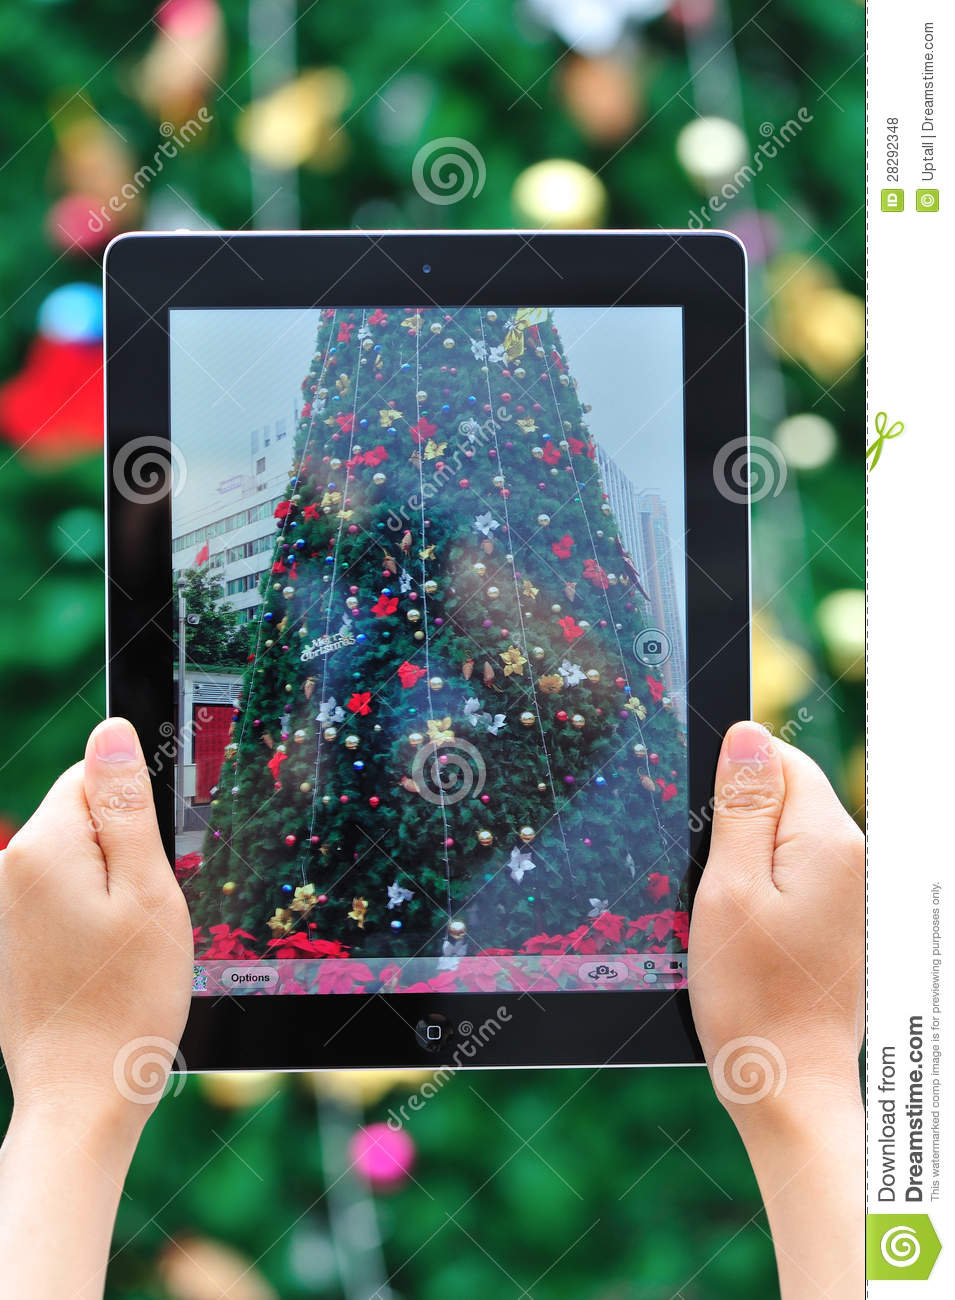 descriptive essay on apple ipad3 my dream gadget My apple ipad is now broken and she has 83 views  when we are jailbreaking our gadget, data get lost  it's not being formally called the ipad3 nor the ipad.